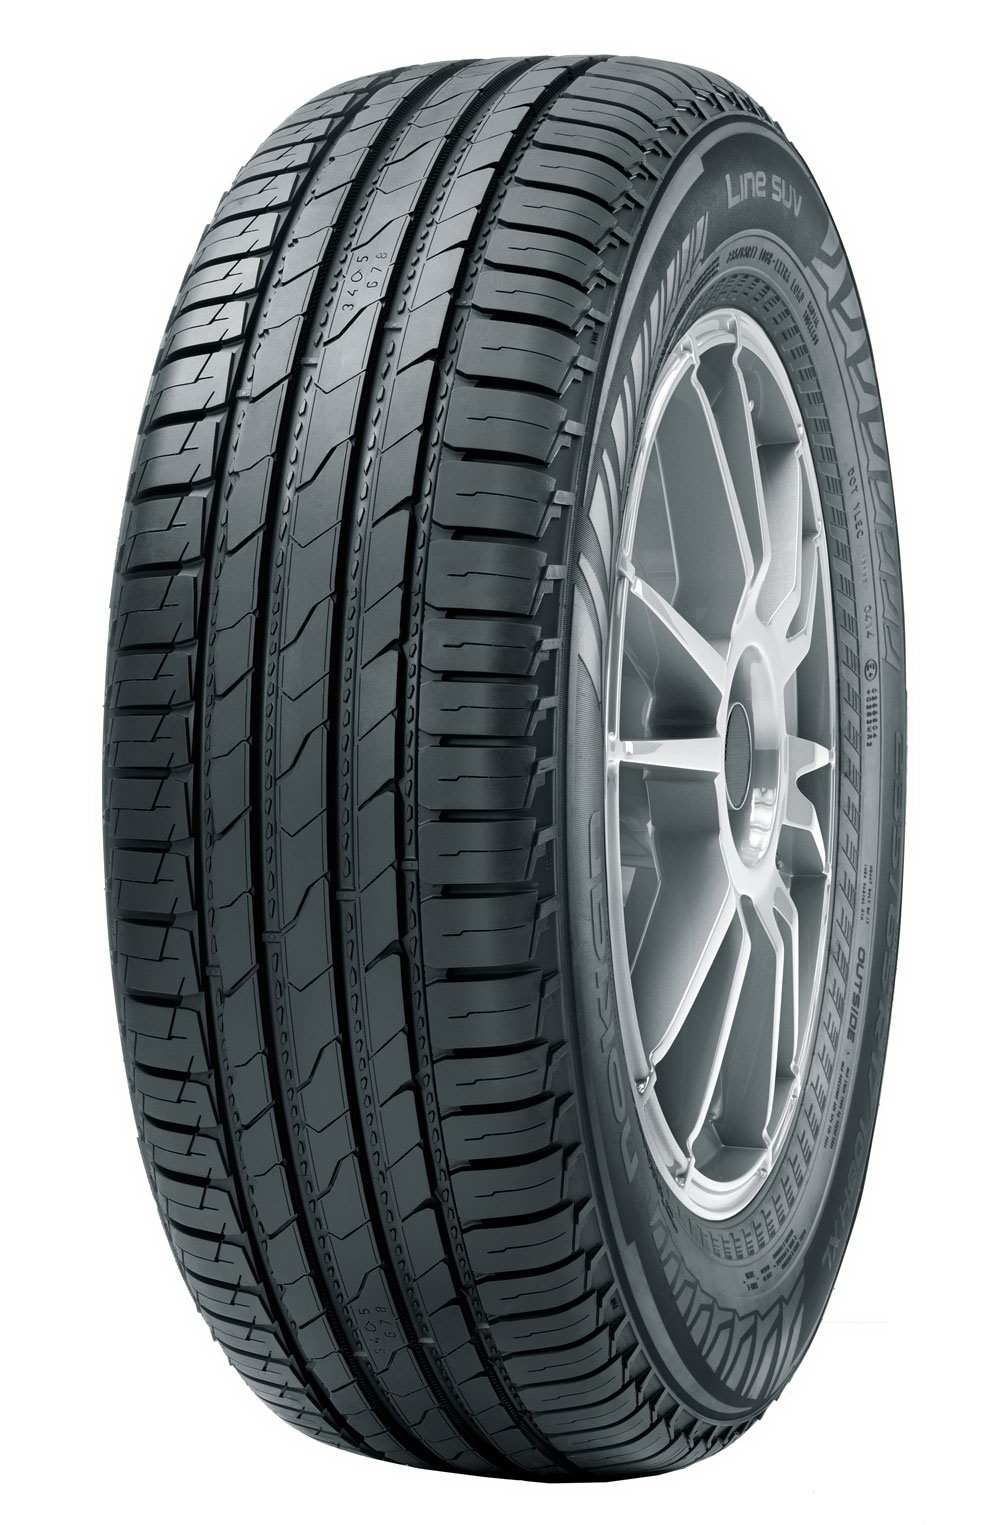 Anvelope all seasons NOKIAN WEATHERPROOF C 235/65 R16C 121N